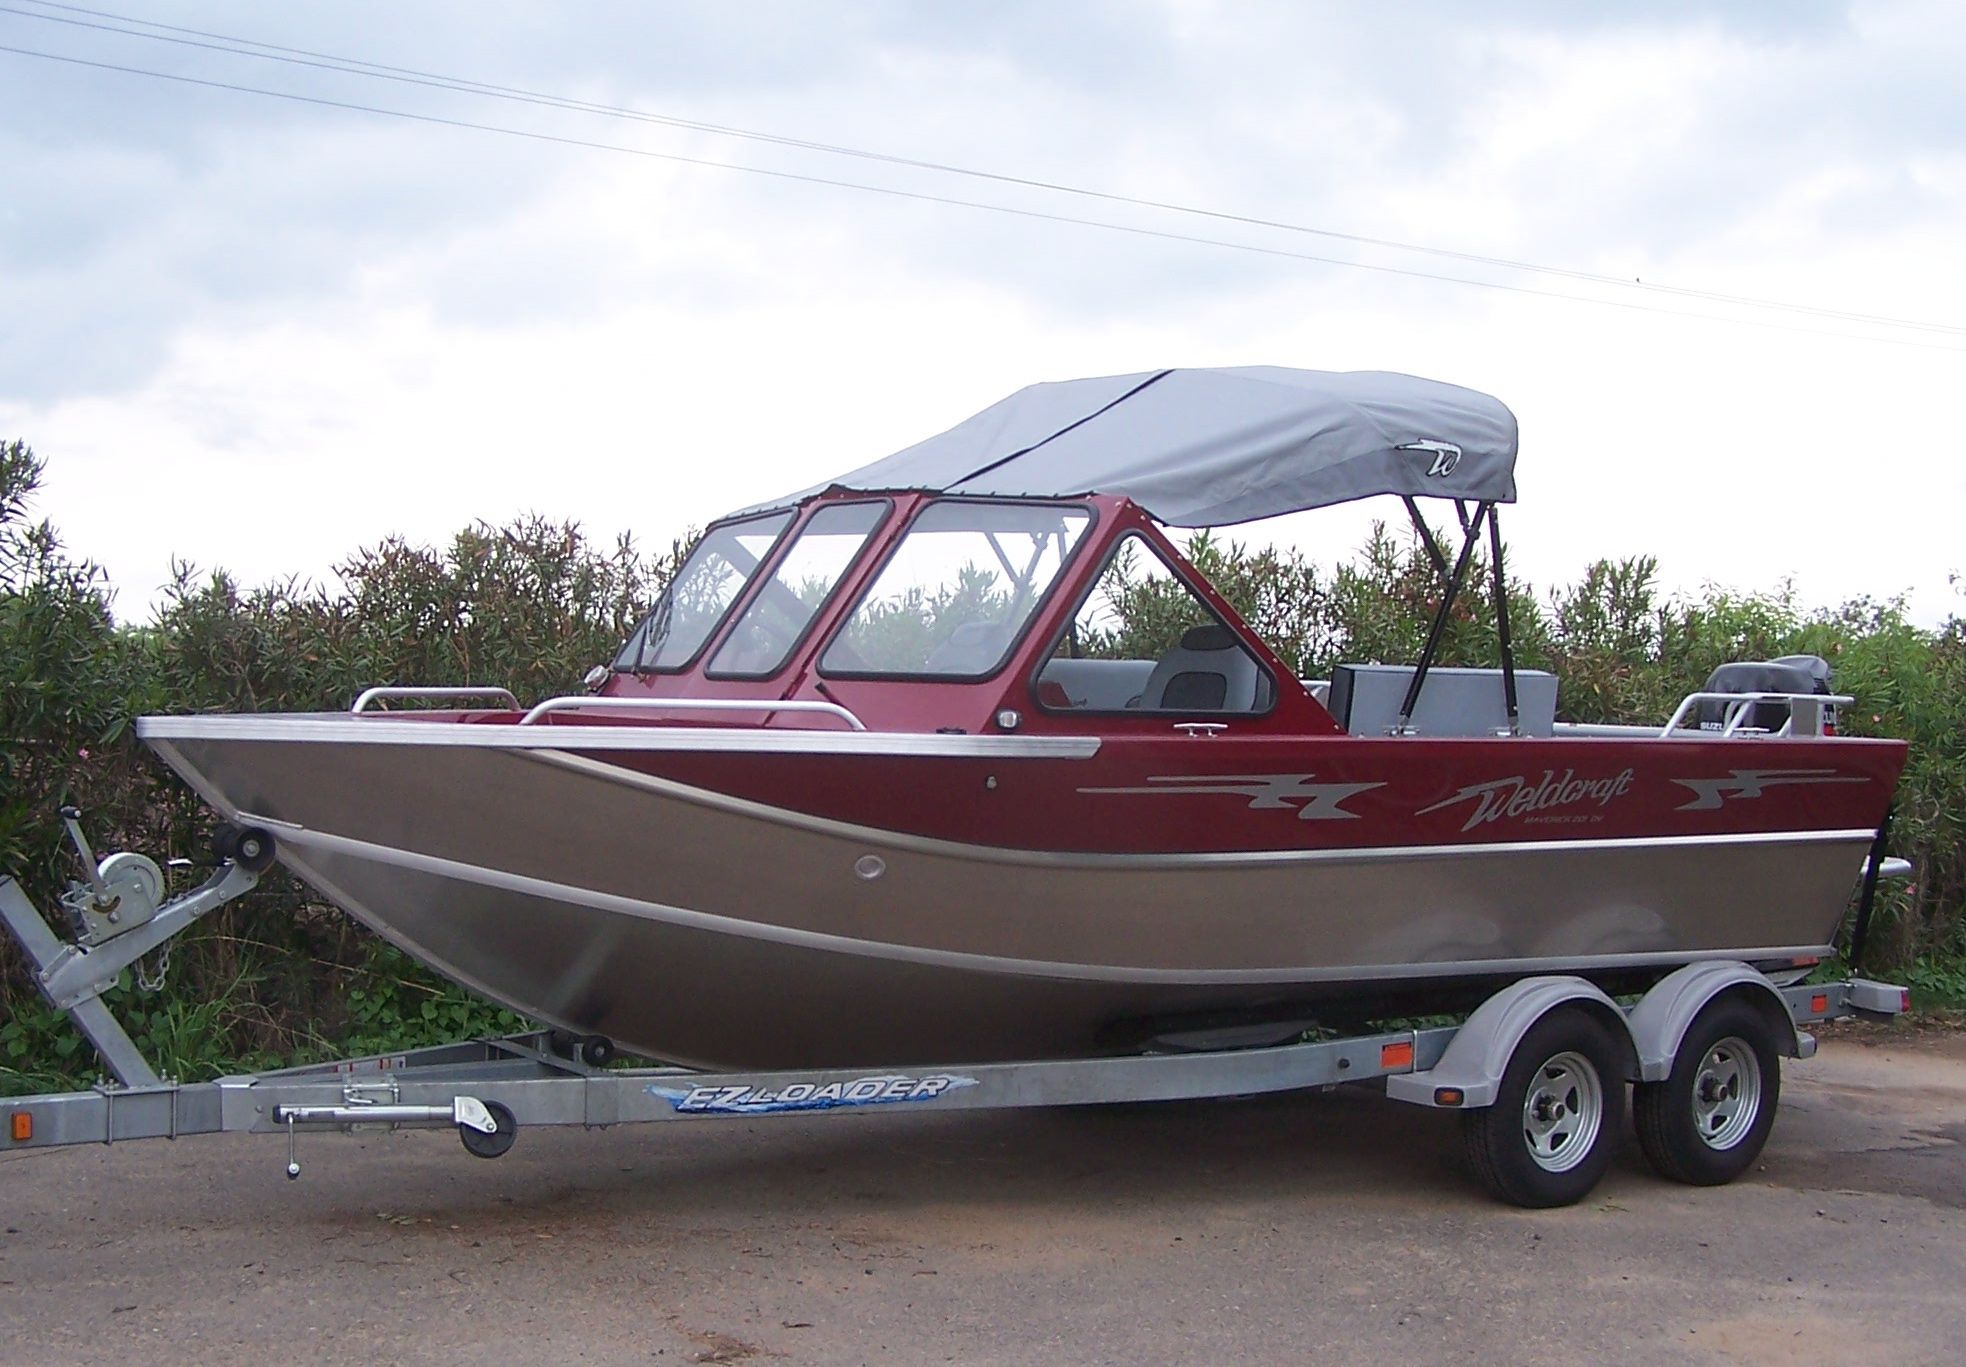 Hewescraft 20' SeaRunner - The Hull Truth - Boating and Fishing Forum